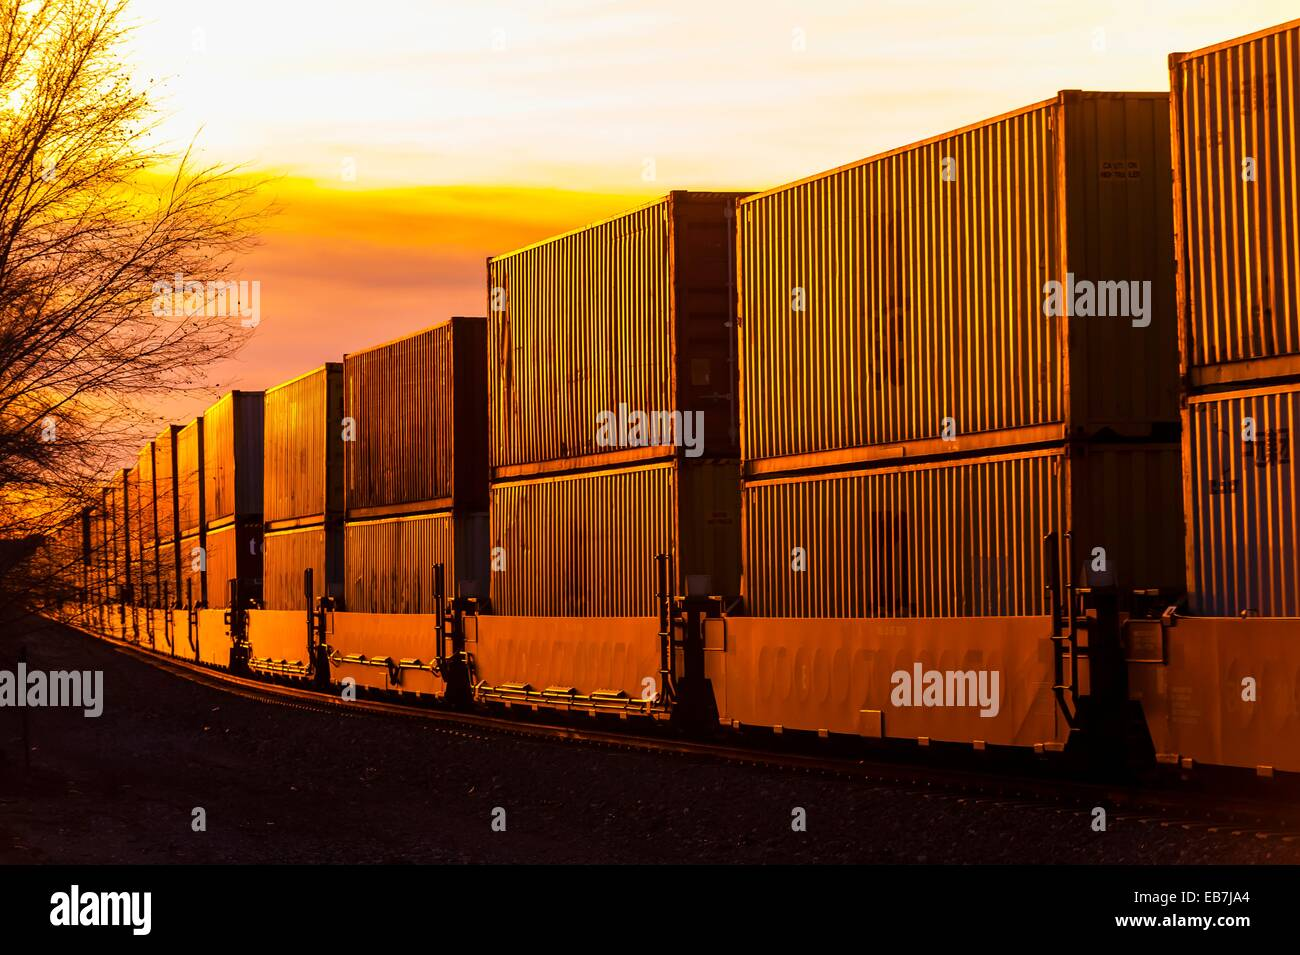 A freight train carrying contrainers, near Gallup, New Mexico USA - Stock Image